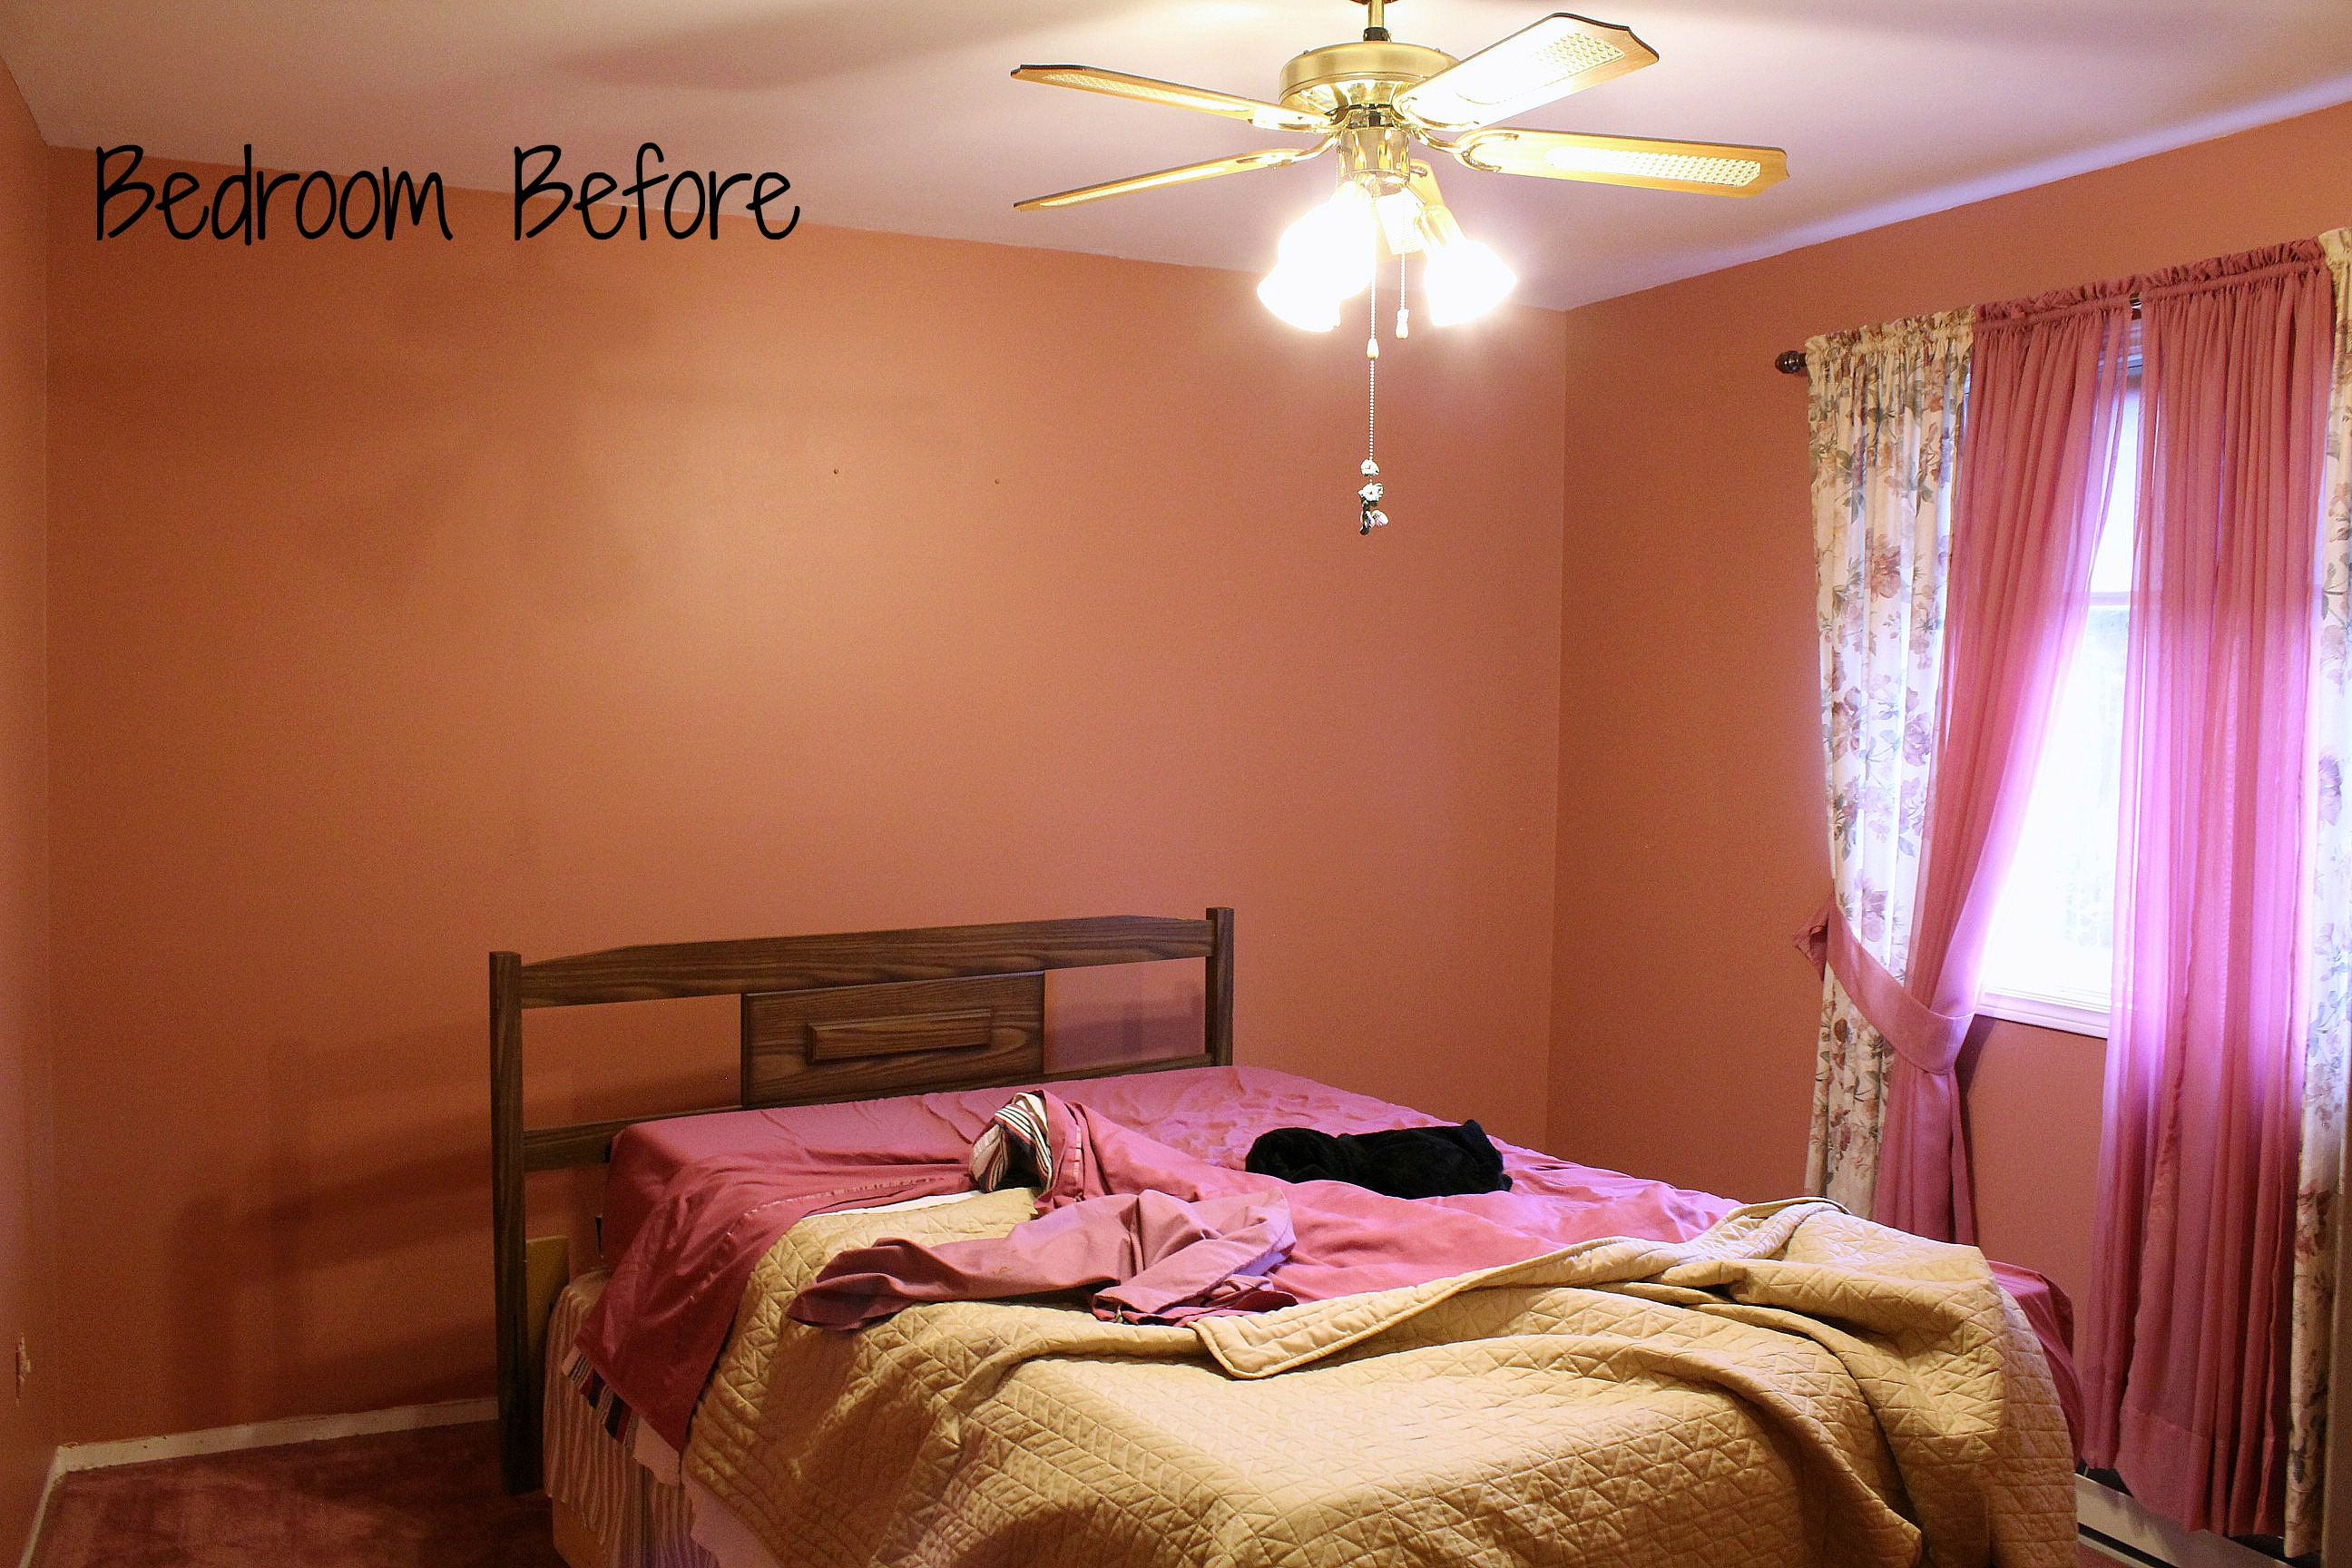 turtles and tails bedroom makeover goodbye dusty rose